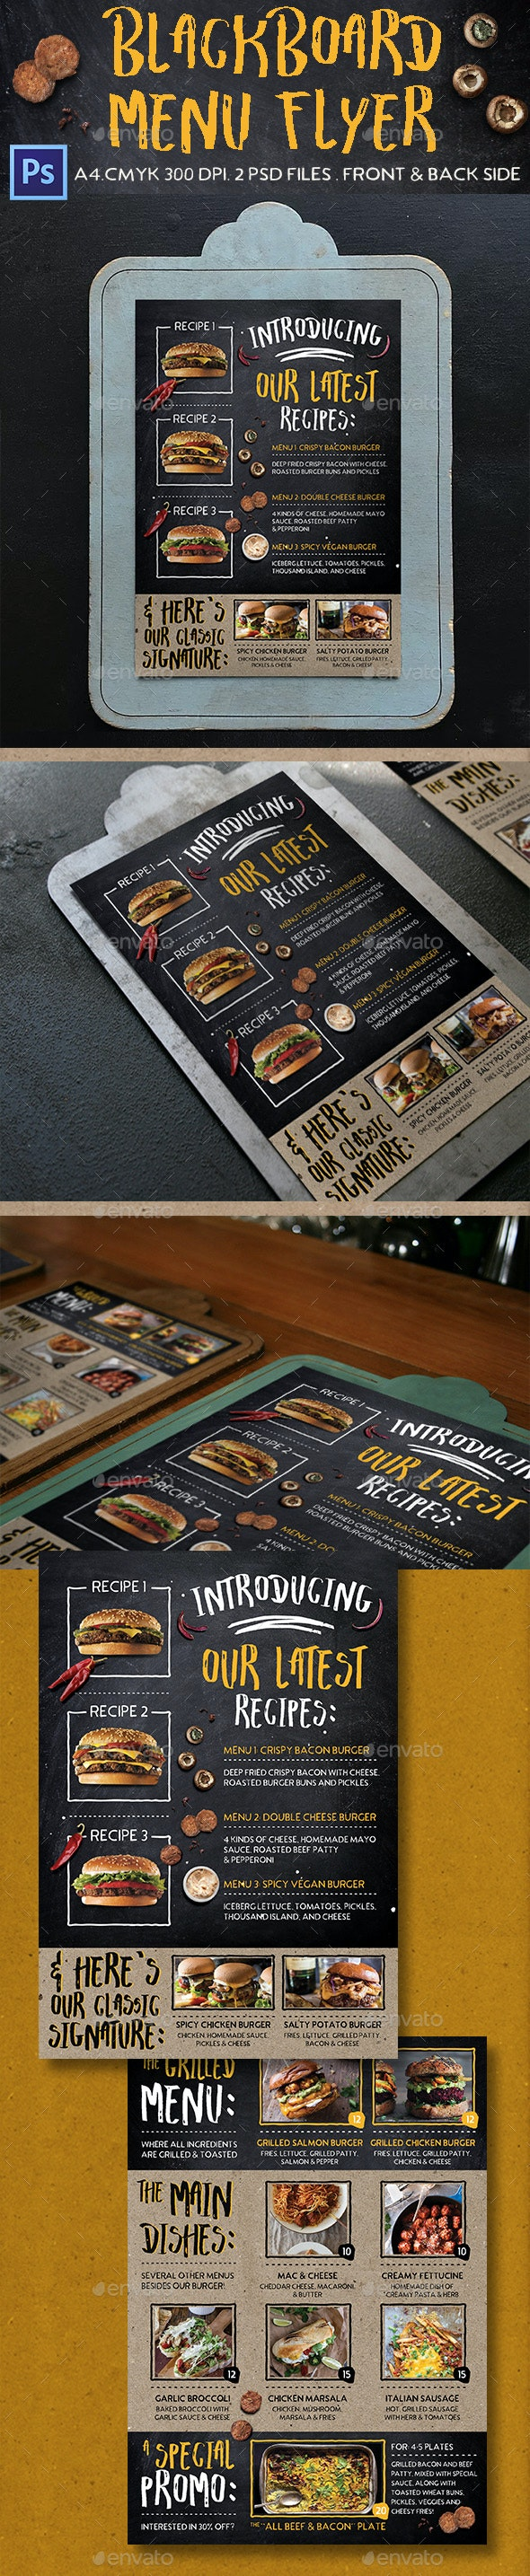 Blackboard Menu Flyer - Food Menus Print Templates